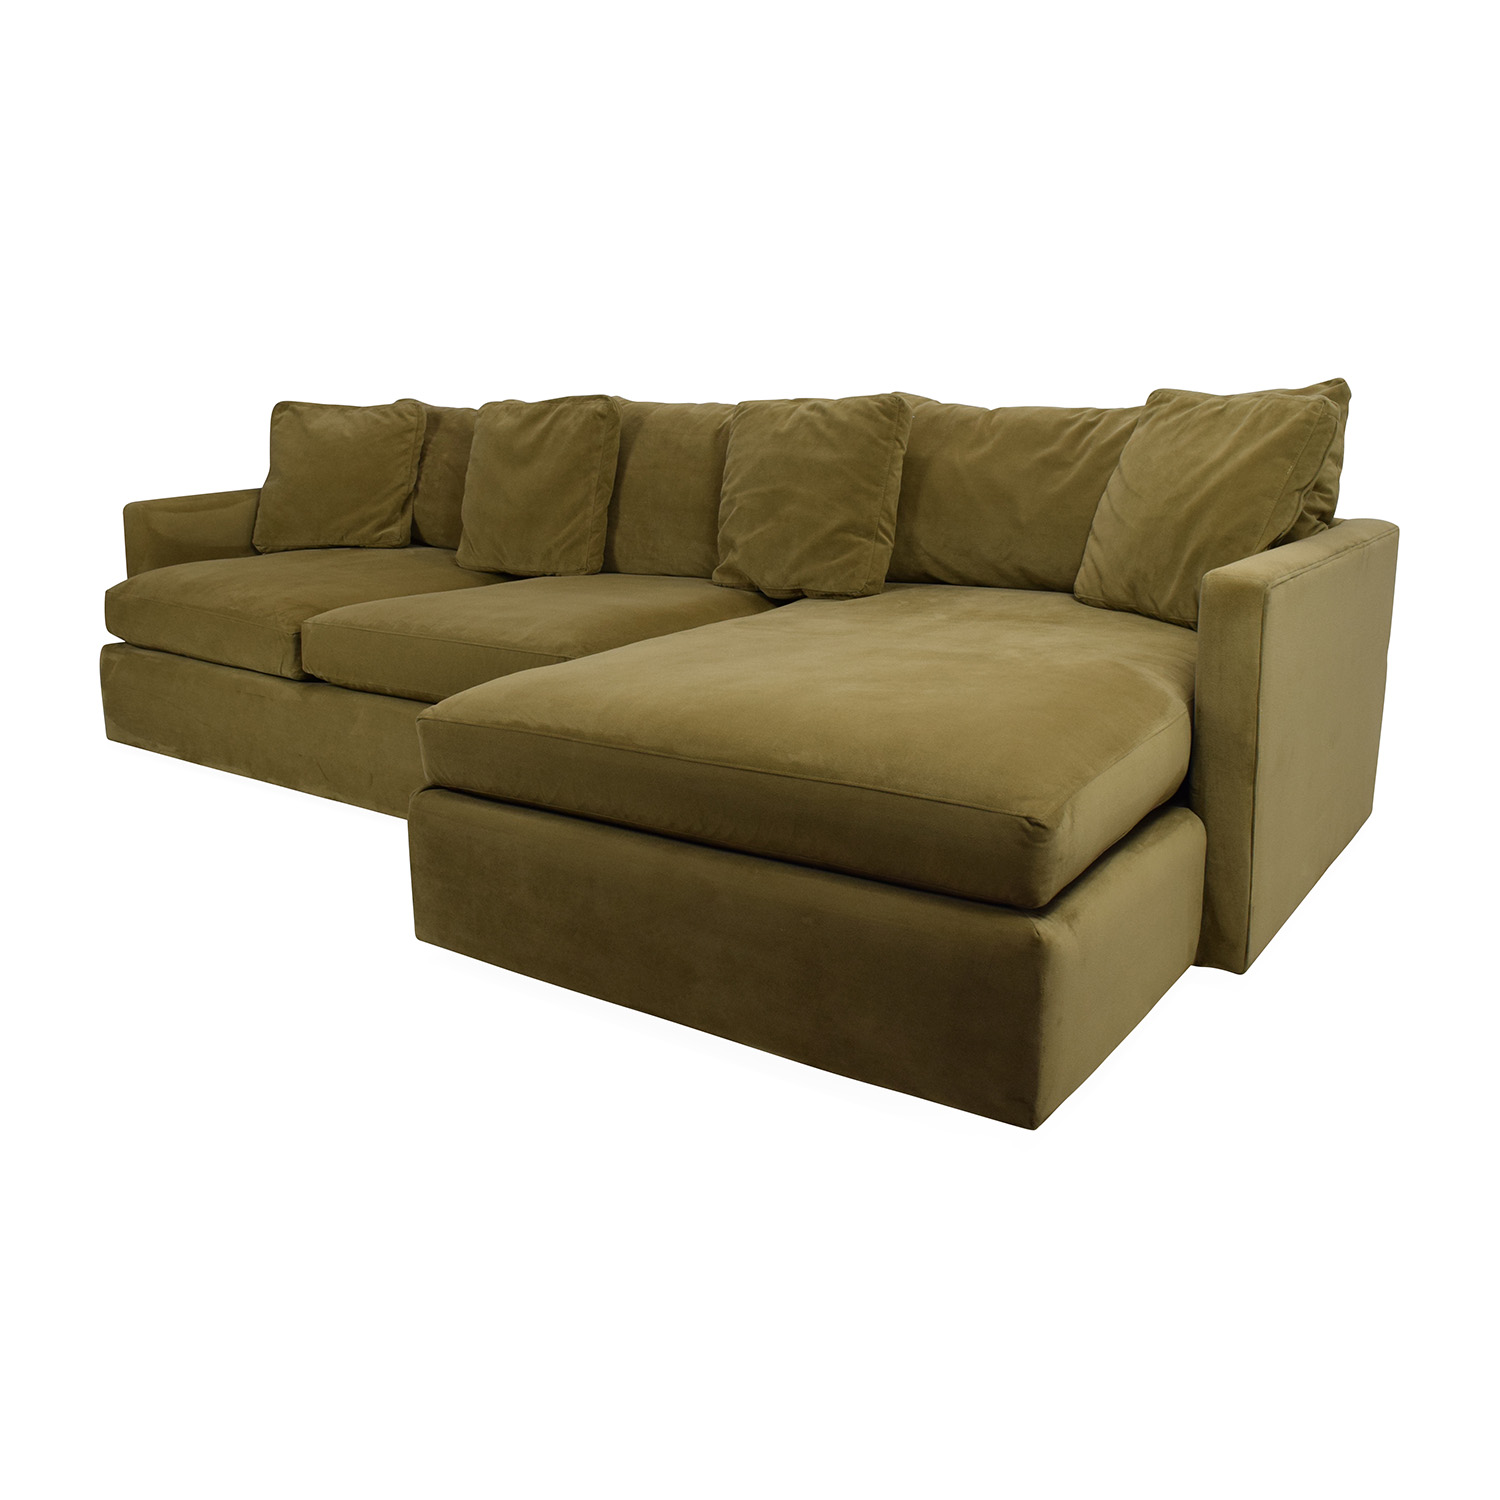 65% OFF Crate and Barrel Crate and Barrel Lounge II Sectional